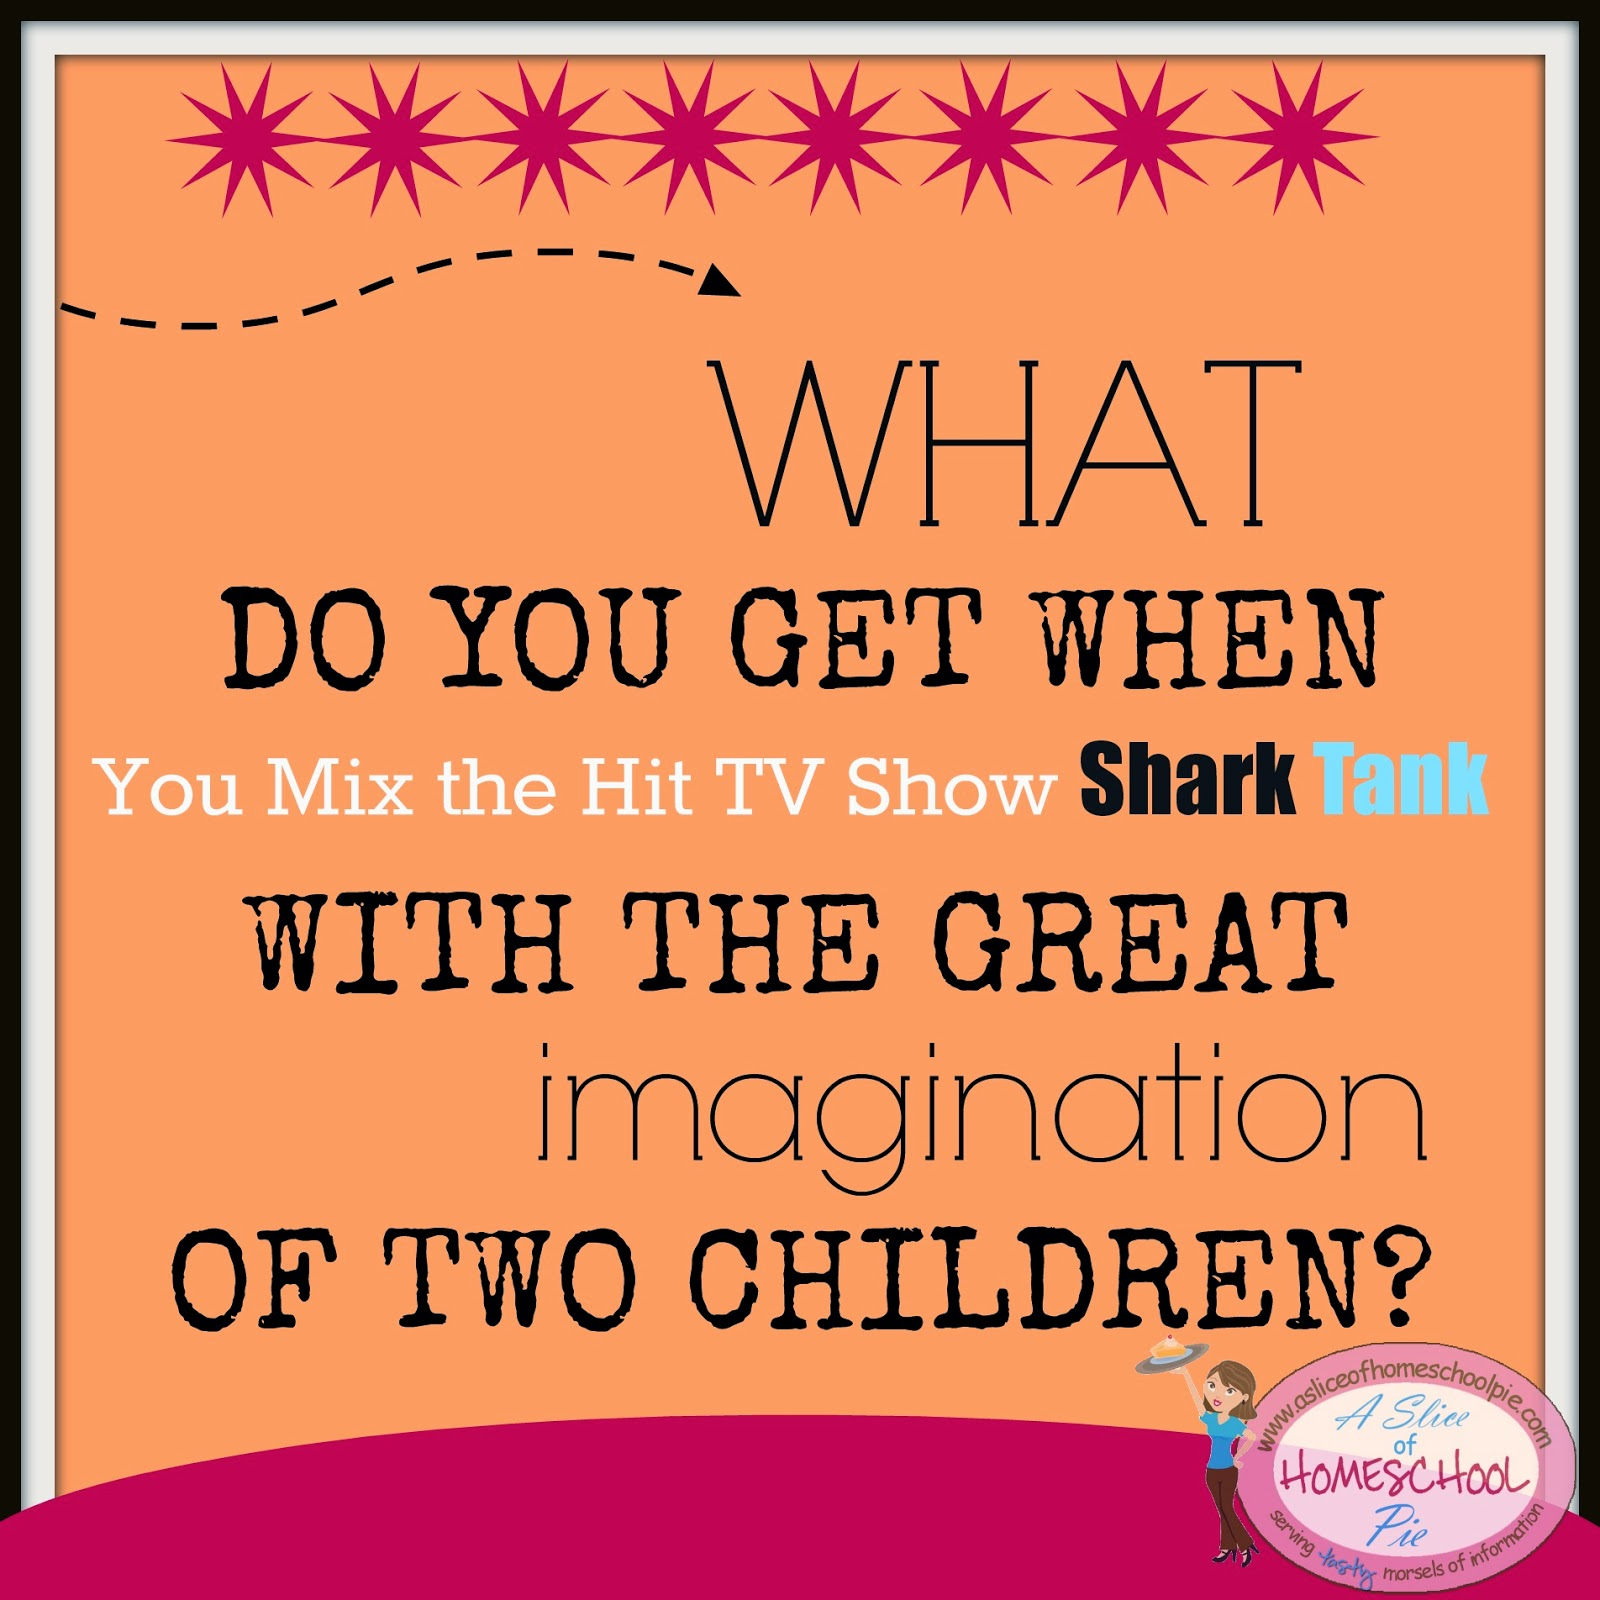 What do you get when you mix the hit TV show Shark Tank with the imagination of 2 children? By ASliceOfHomeschoolPie.com